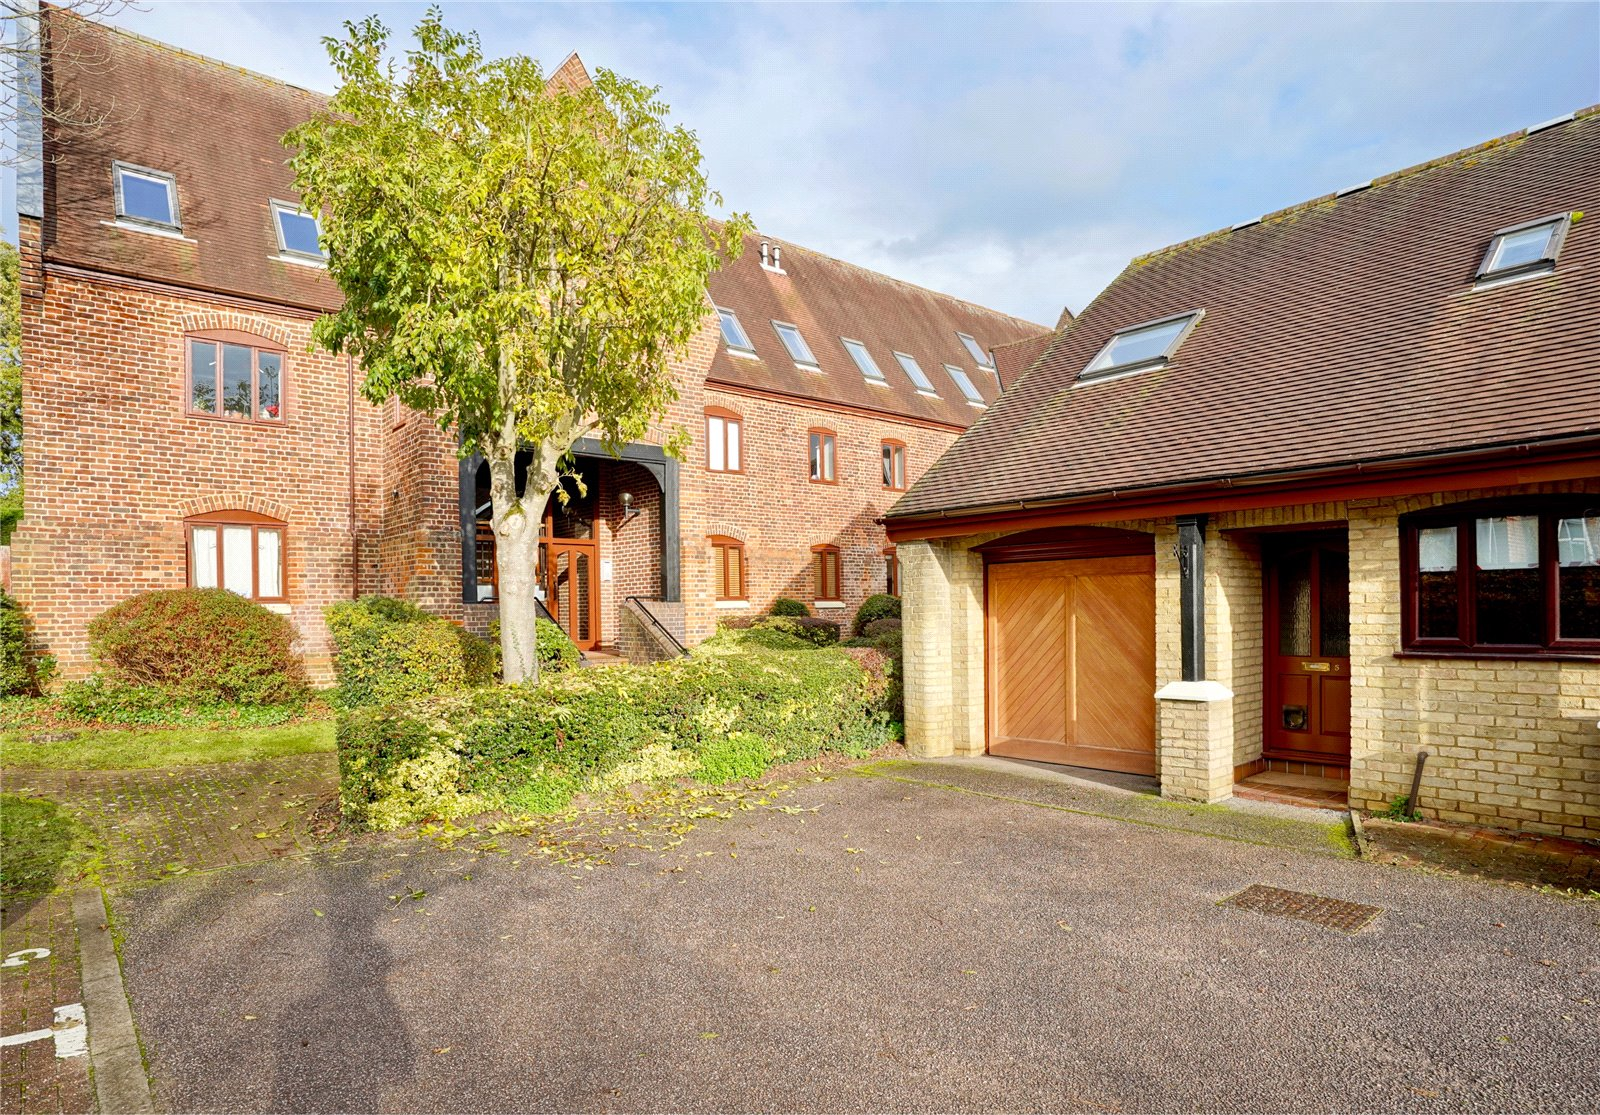 2 bed house for sale in Rampley Lane, Grove Court, PE19 6PQ, PE19